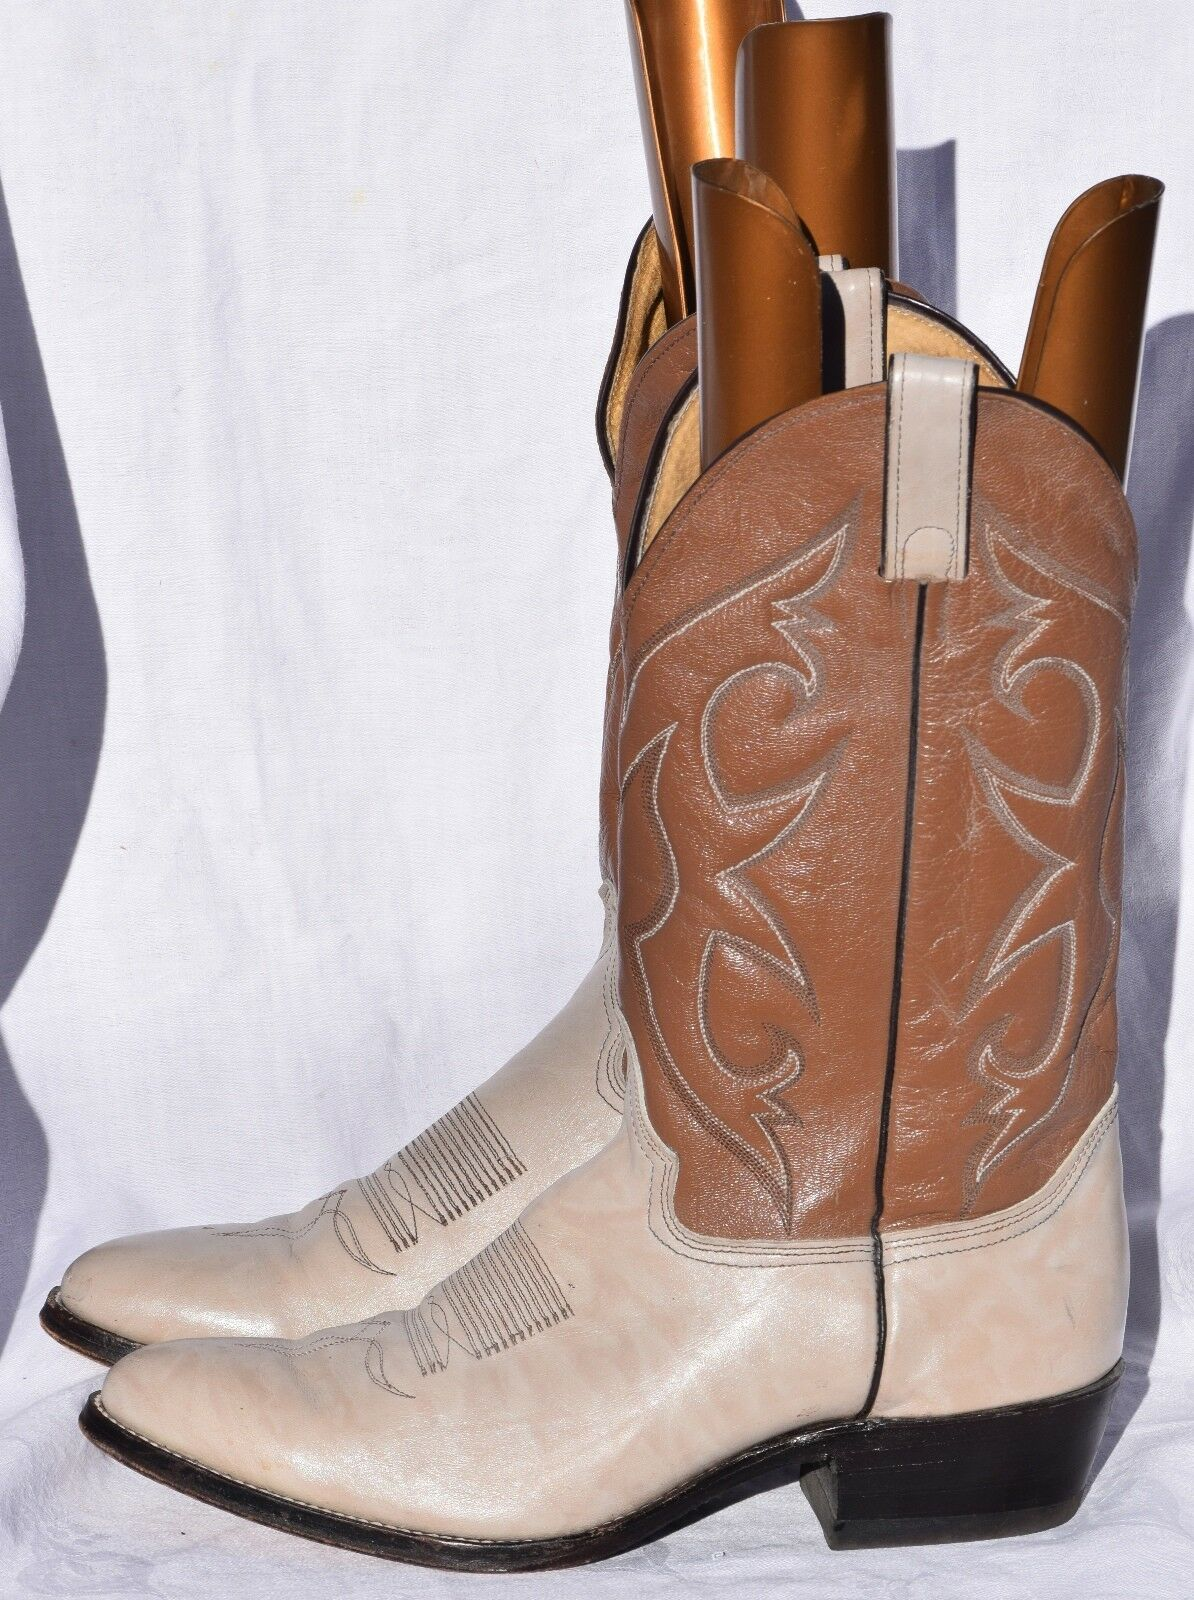 Abilene cream and brown leather mens cowboy boots  US 10.5 B Excellent